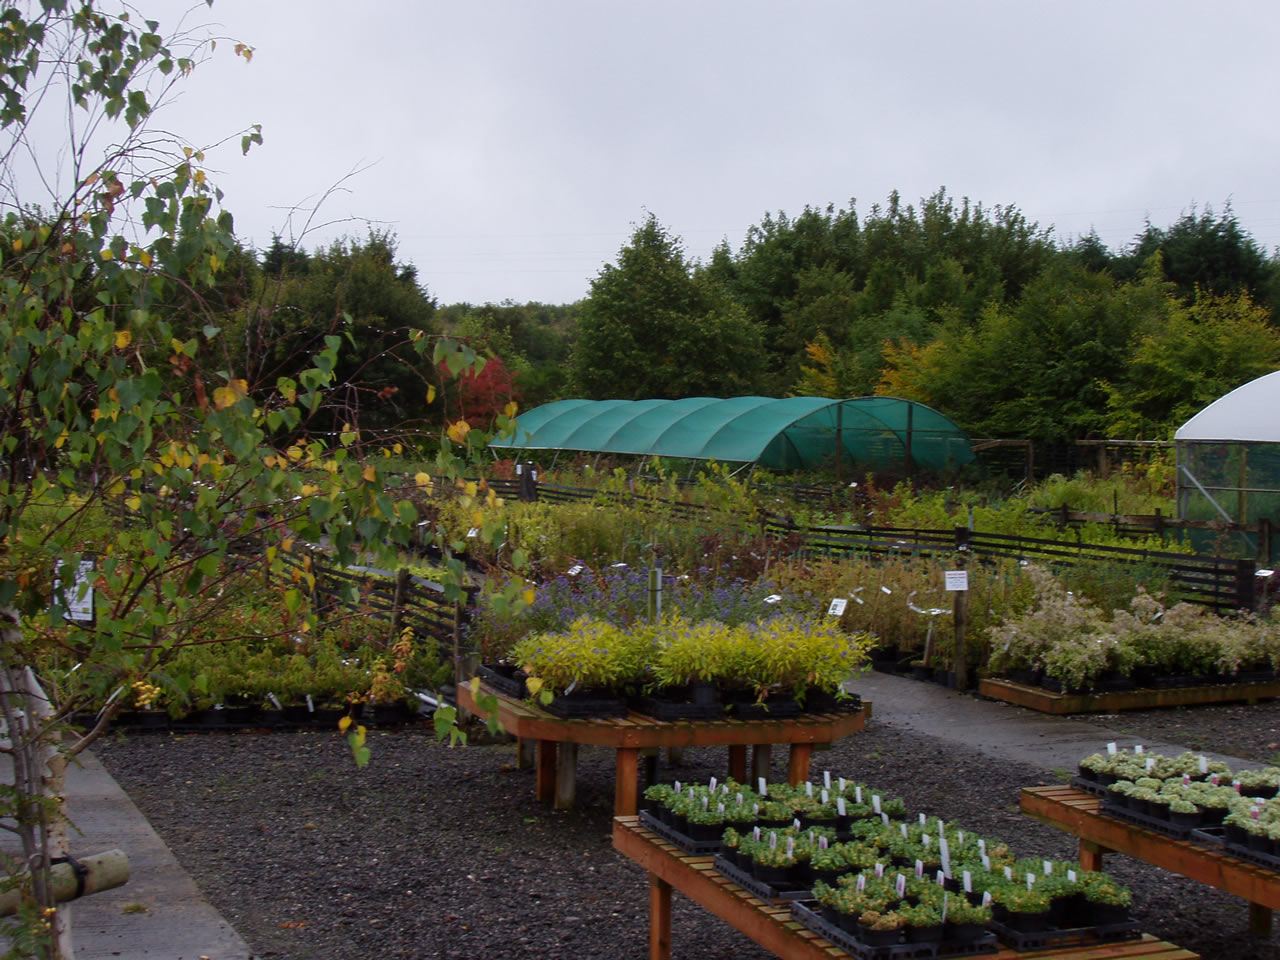 Wibble Farm Nurseries